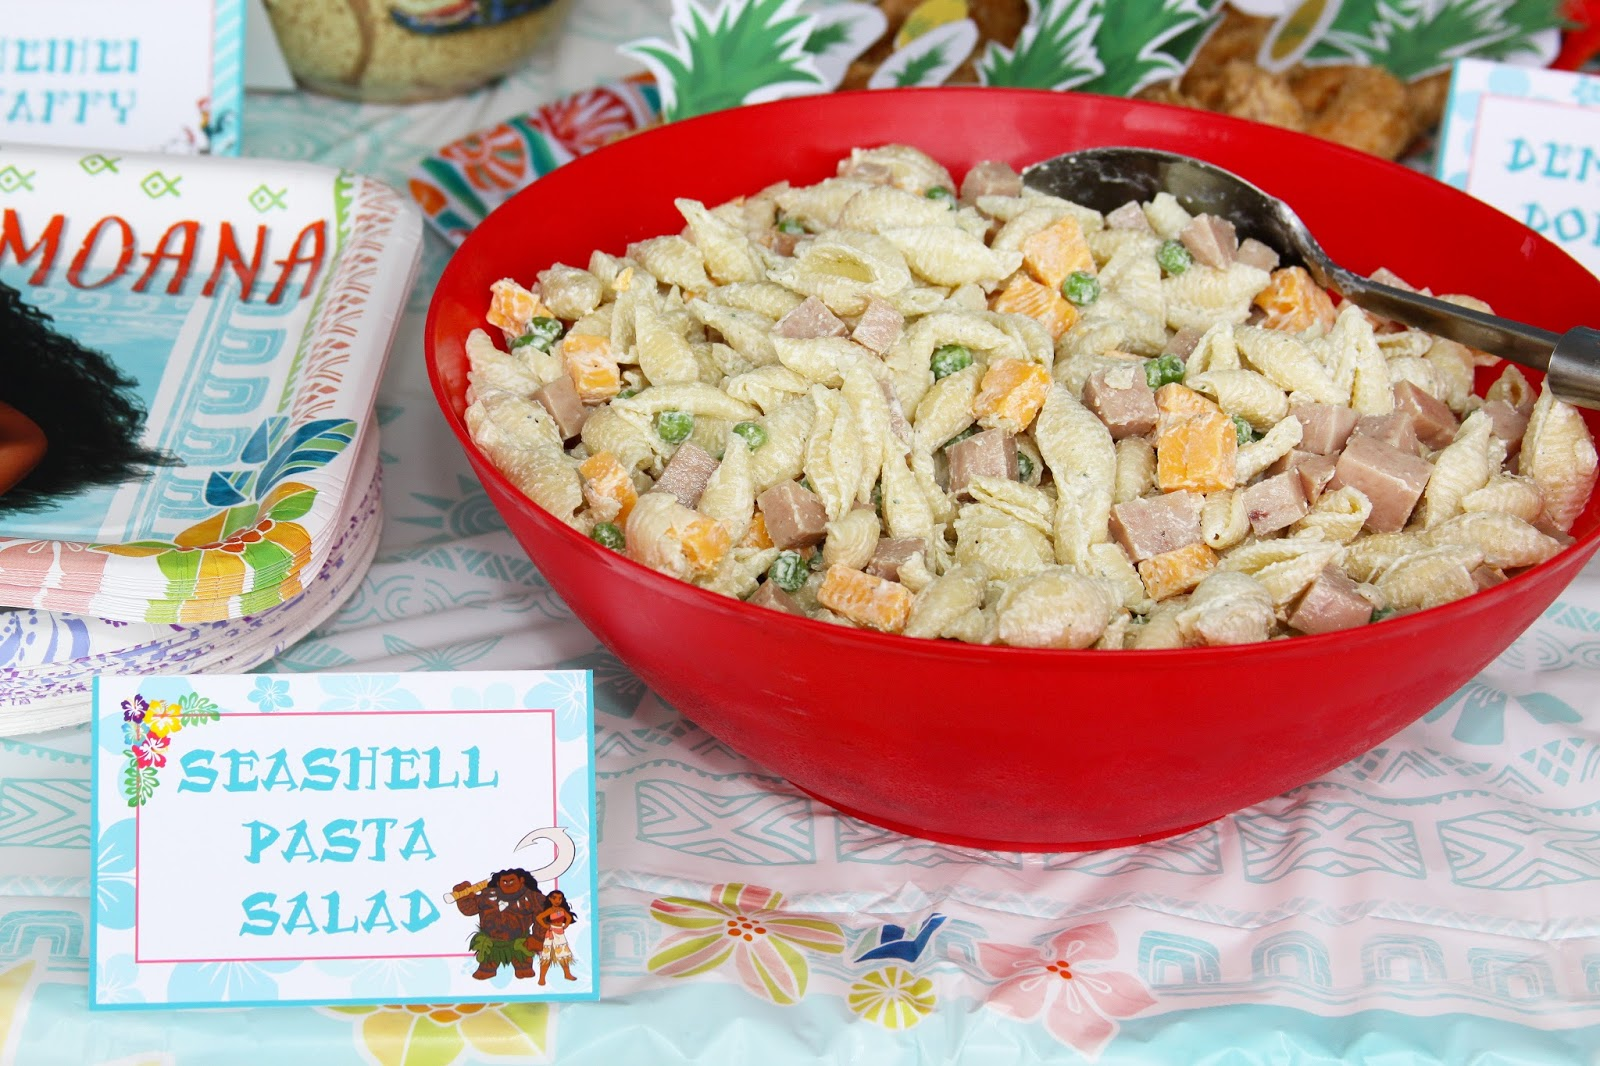 This Pasta Salad Is Creamy And Flavorful With A Dressing Of Ranch Seasoning Sour Cream Mayo I Also Add Peas Cheese You Guessed It Spam